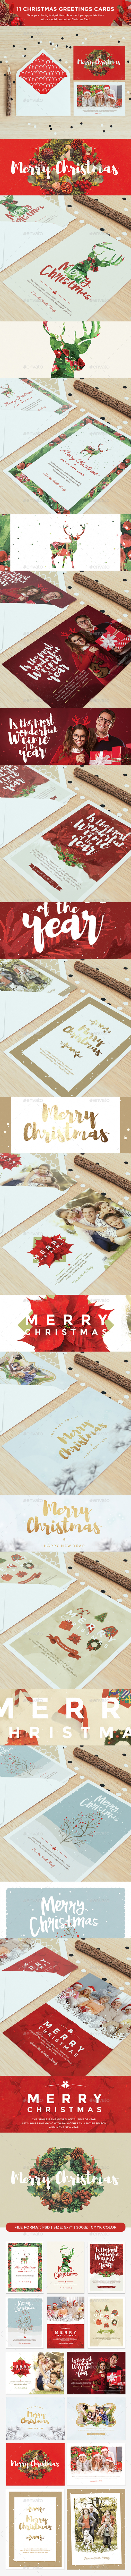 11 Christmas Greetings Cards - Greeting Cards Cards & Invites